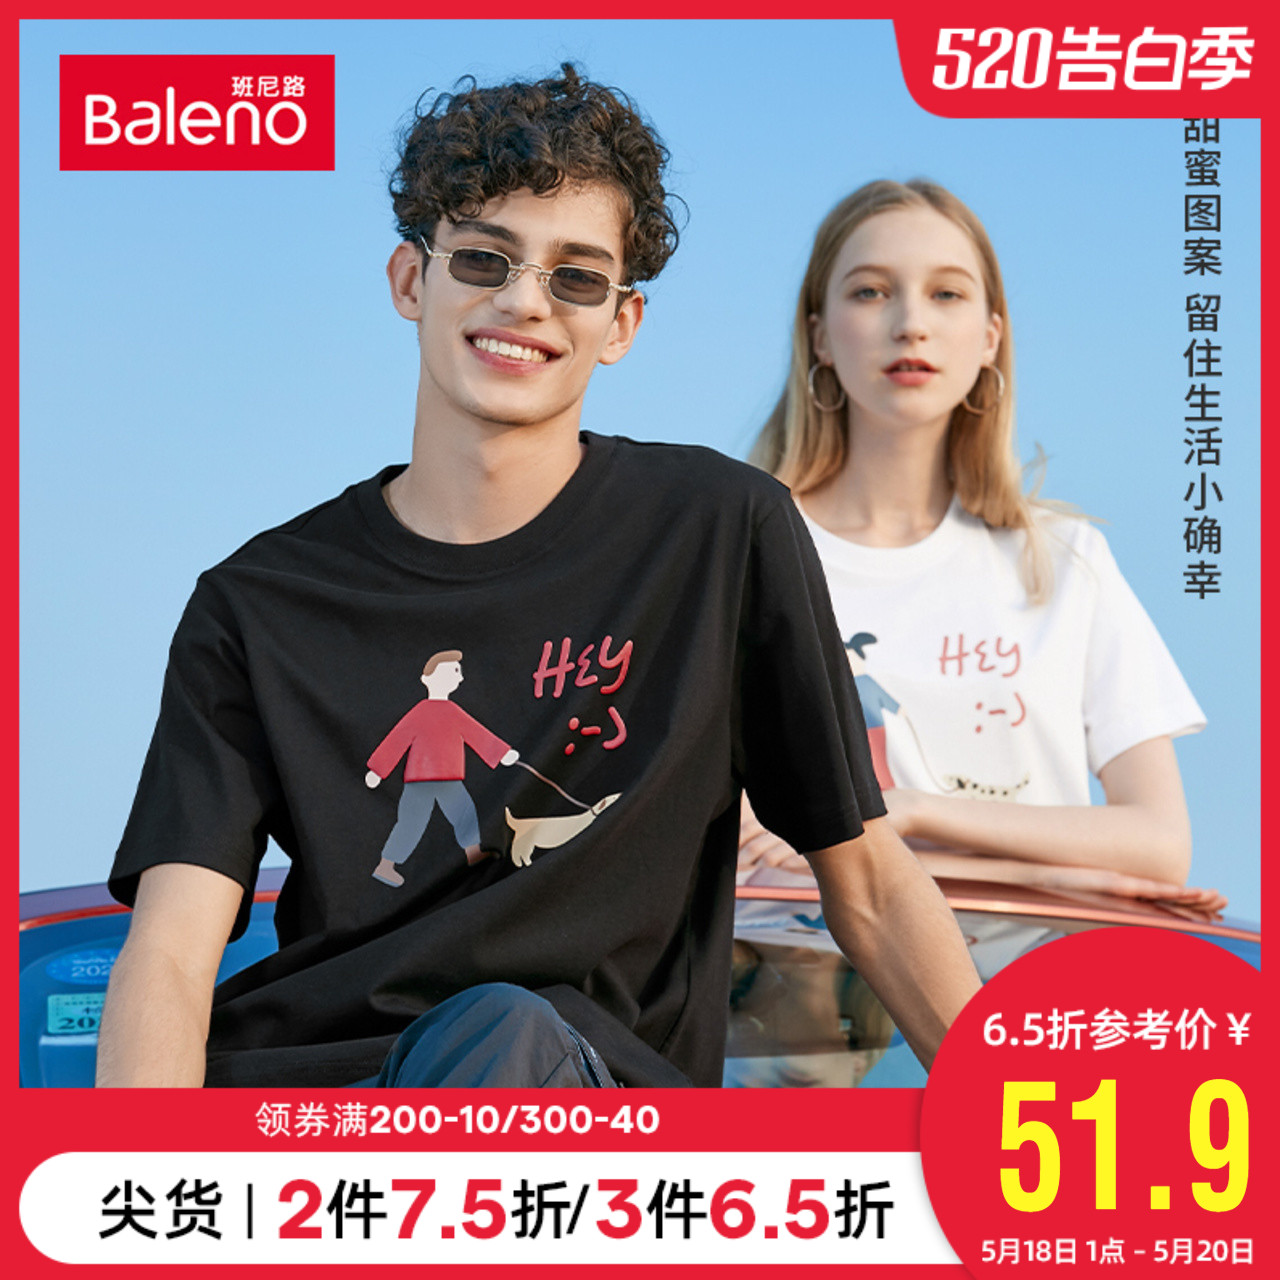 Benny Road 2020 Summer New T-shirt men's short sleeves fashion print loose half-sleeveD T-shirt casual couples